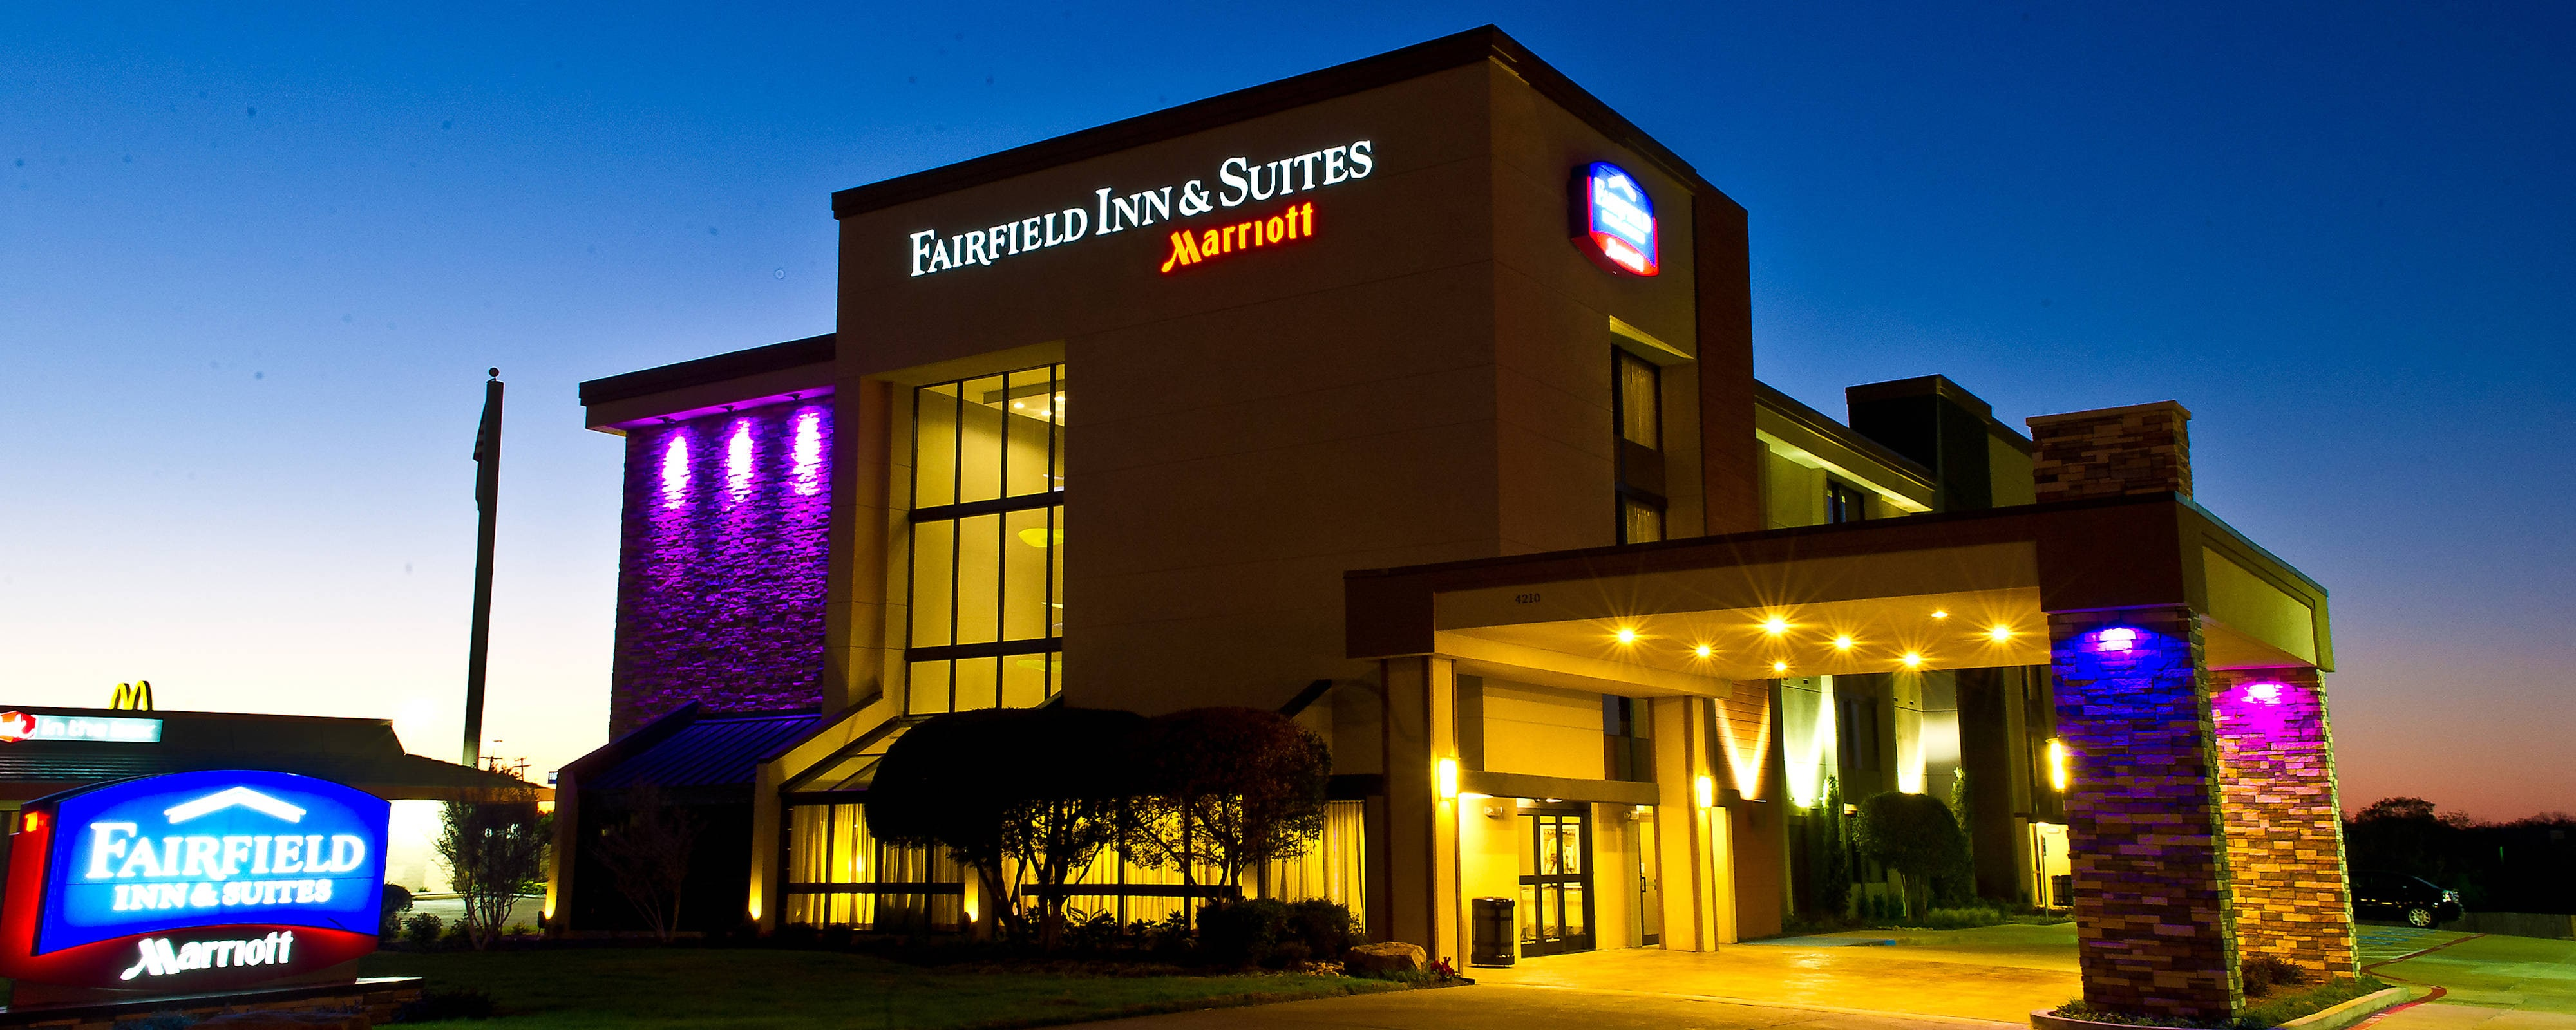 Fairfield Inn & Suites DFW South, Irving: Airport transportation